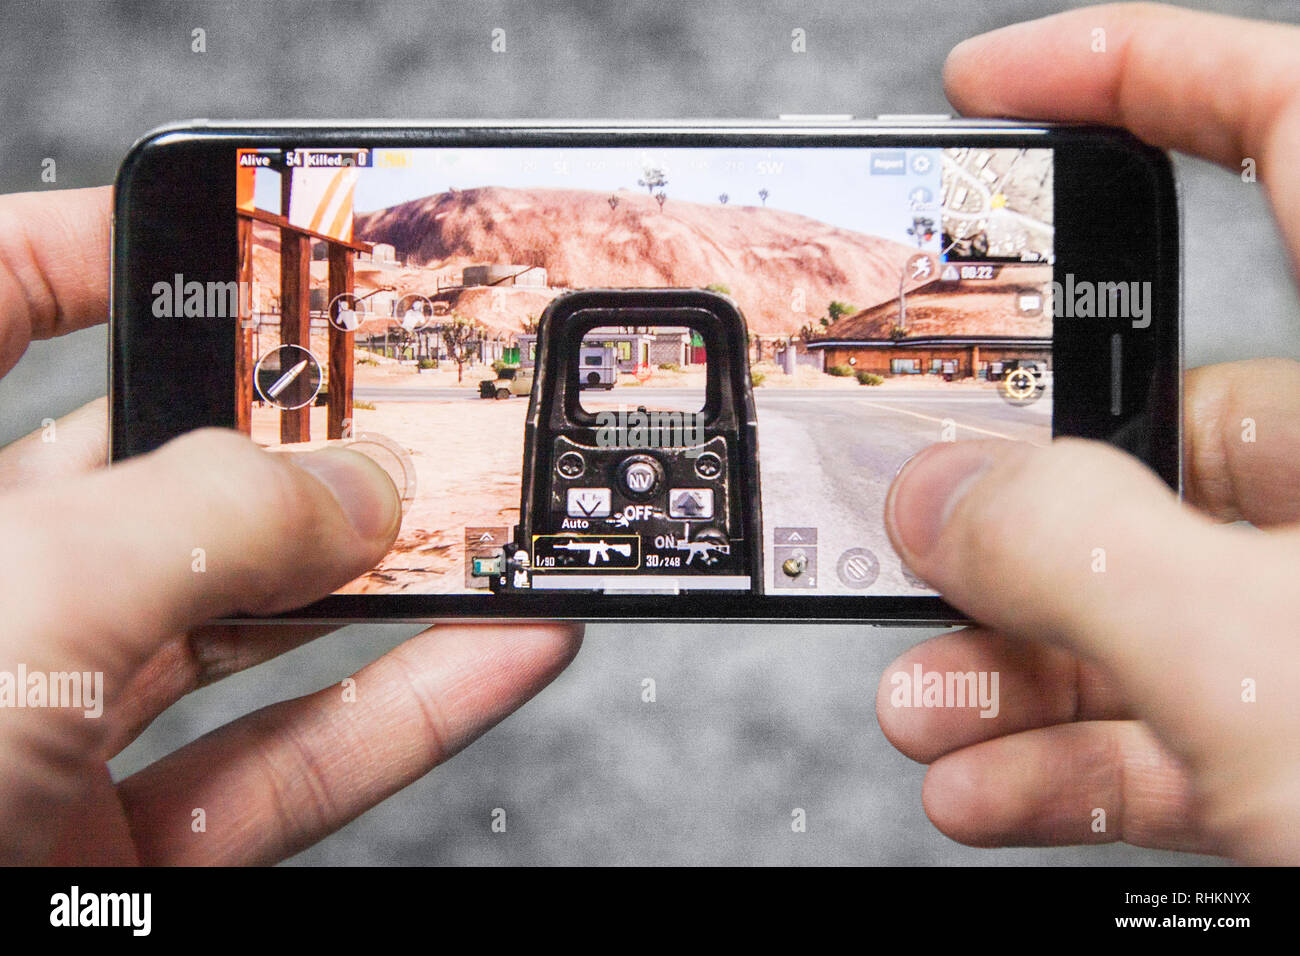 Los Angeles, California, USA - 17 December 2018: Hands holding a smartphone with Player's Unknown Battleground also known as PUBG online shooting FPS  - Stock Image